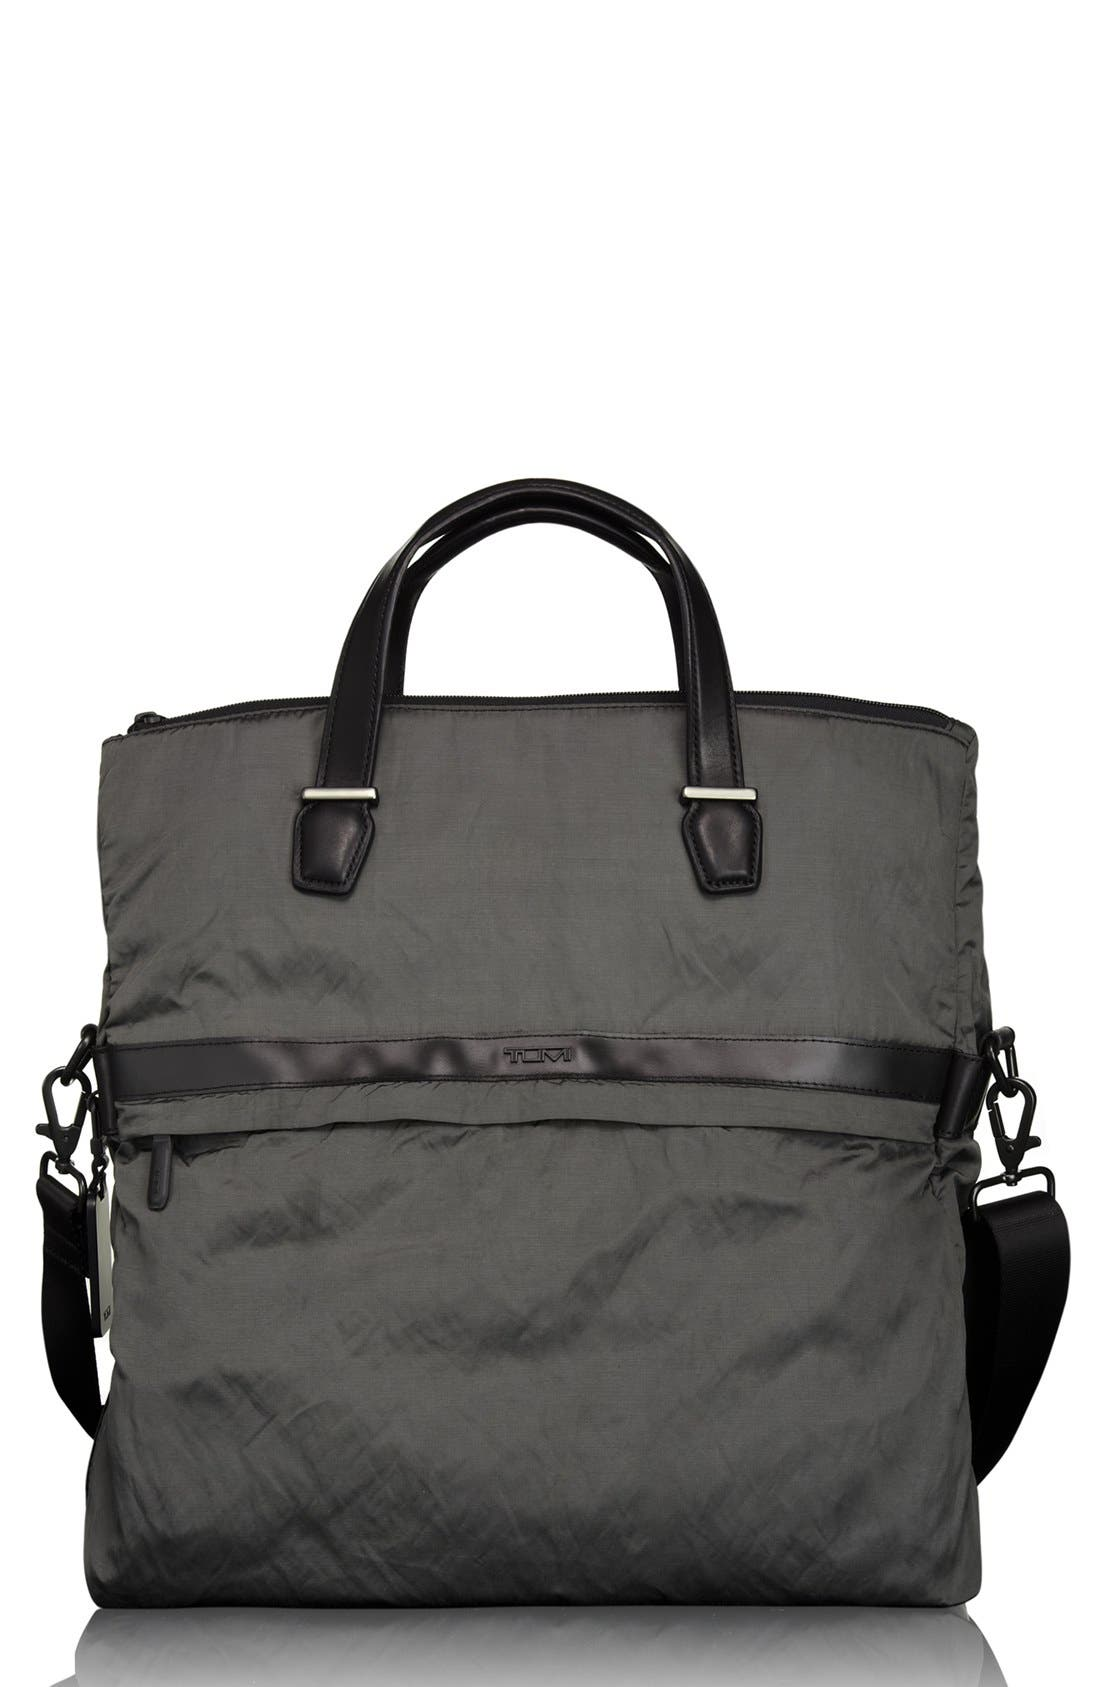 Main Image - Tumi 'Virtue - Triumph' Tote Bag